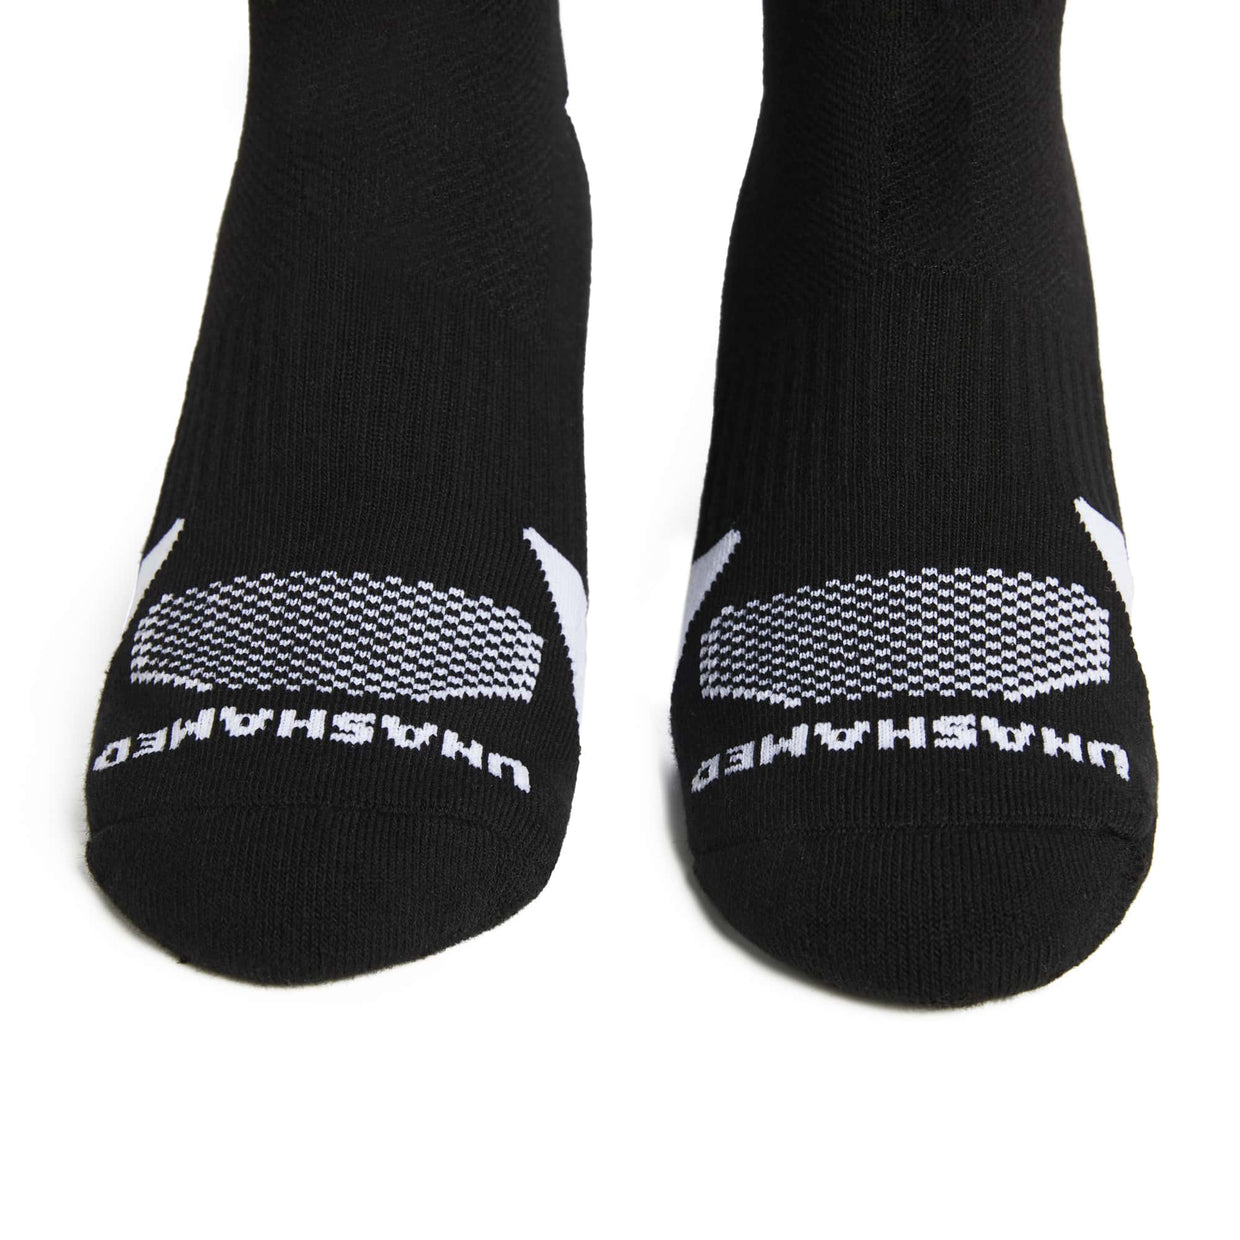 'Unashamed' Socks - Black & White